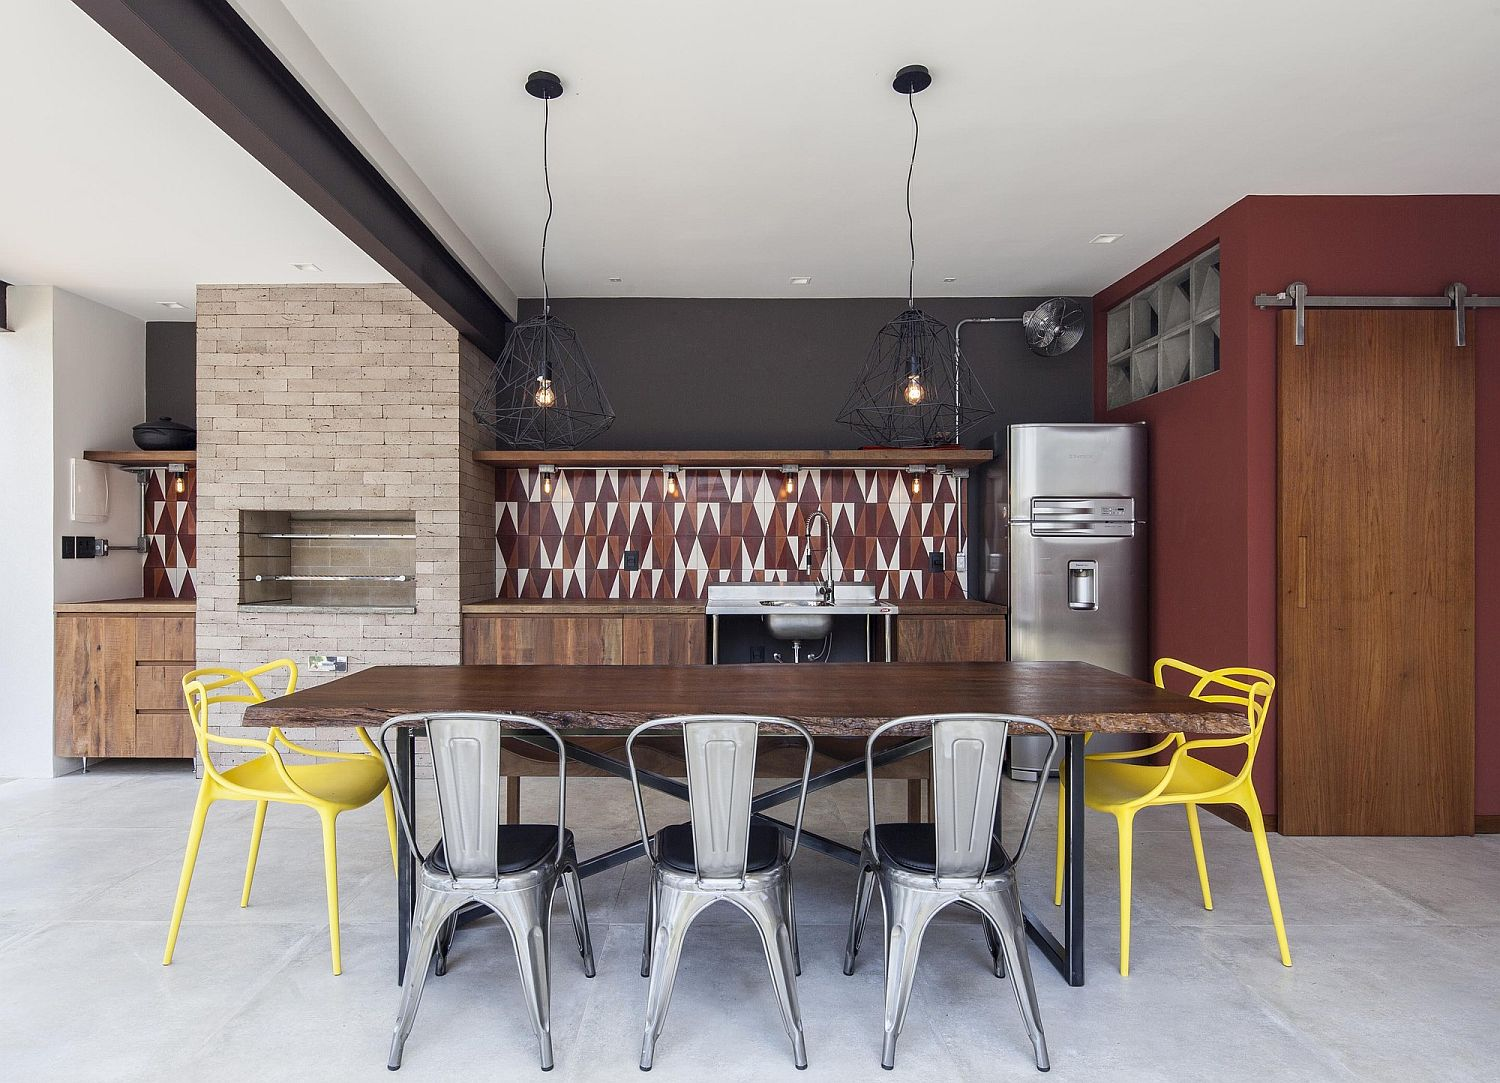 Exquisite-pendants-and-pops-of-yellow-make-a-big-visual-impact-in-the-dining